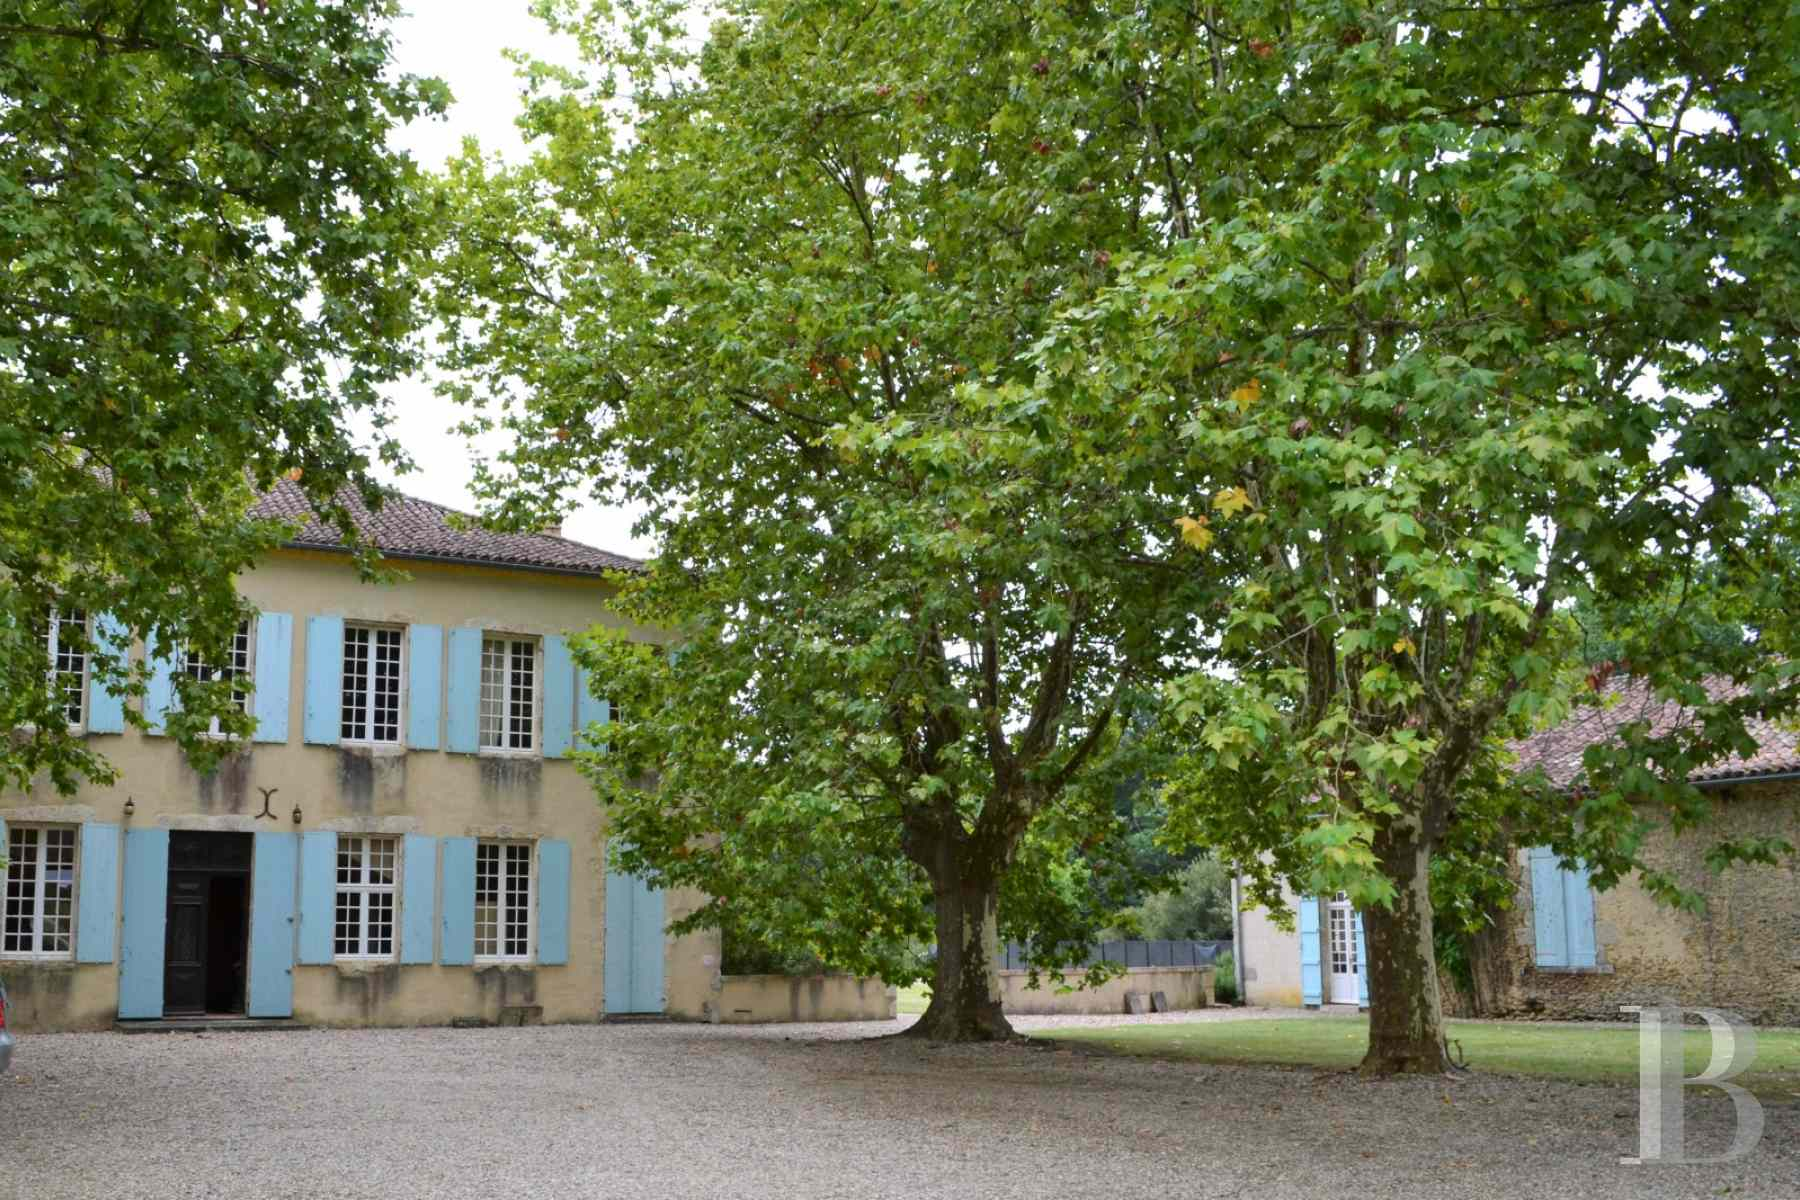 property for sale France aquitaine gascony armagnac - 4 zoom